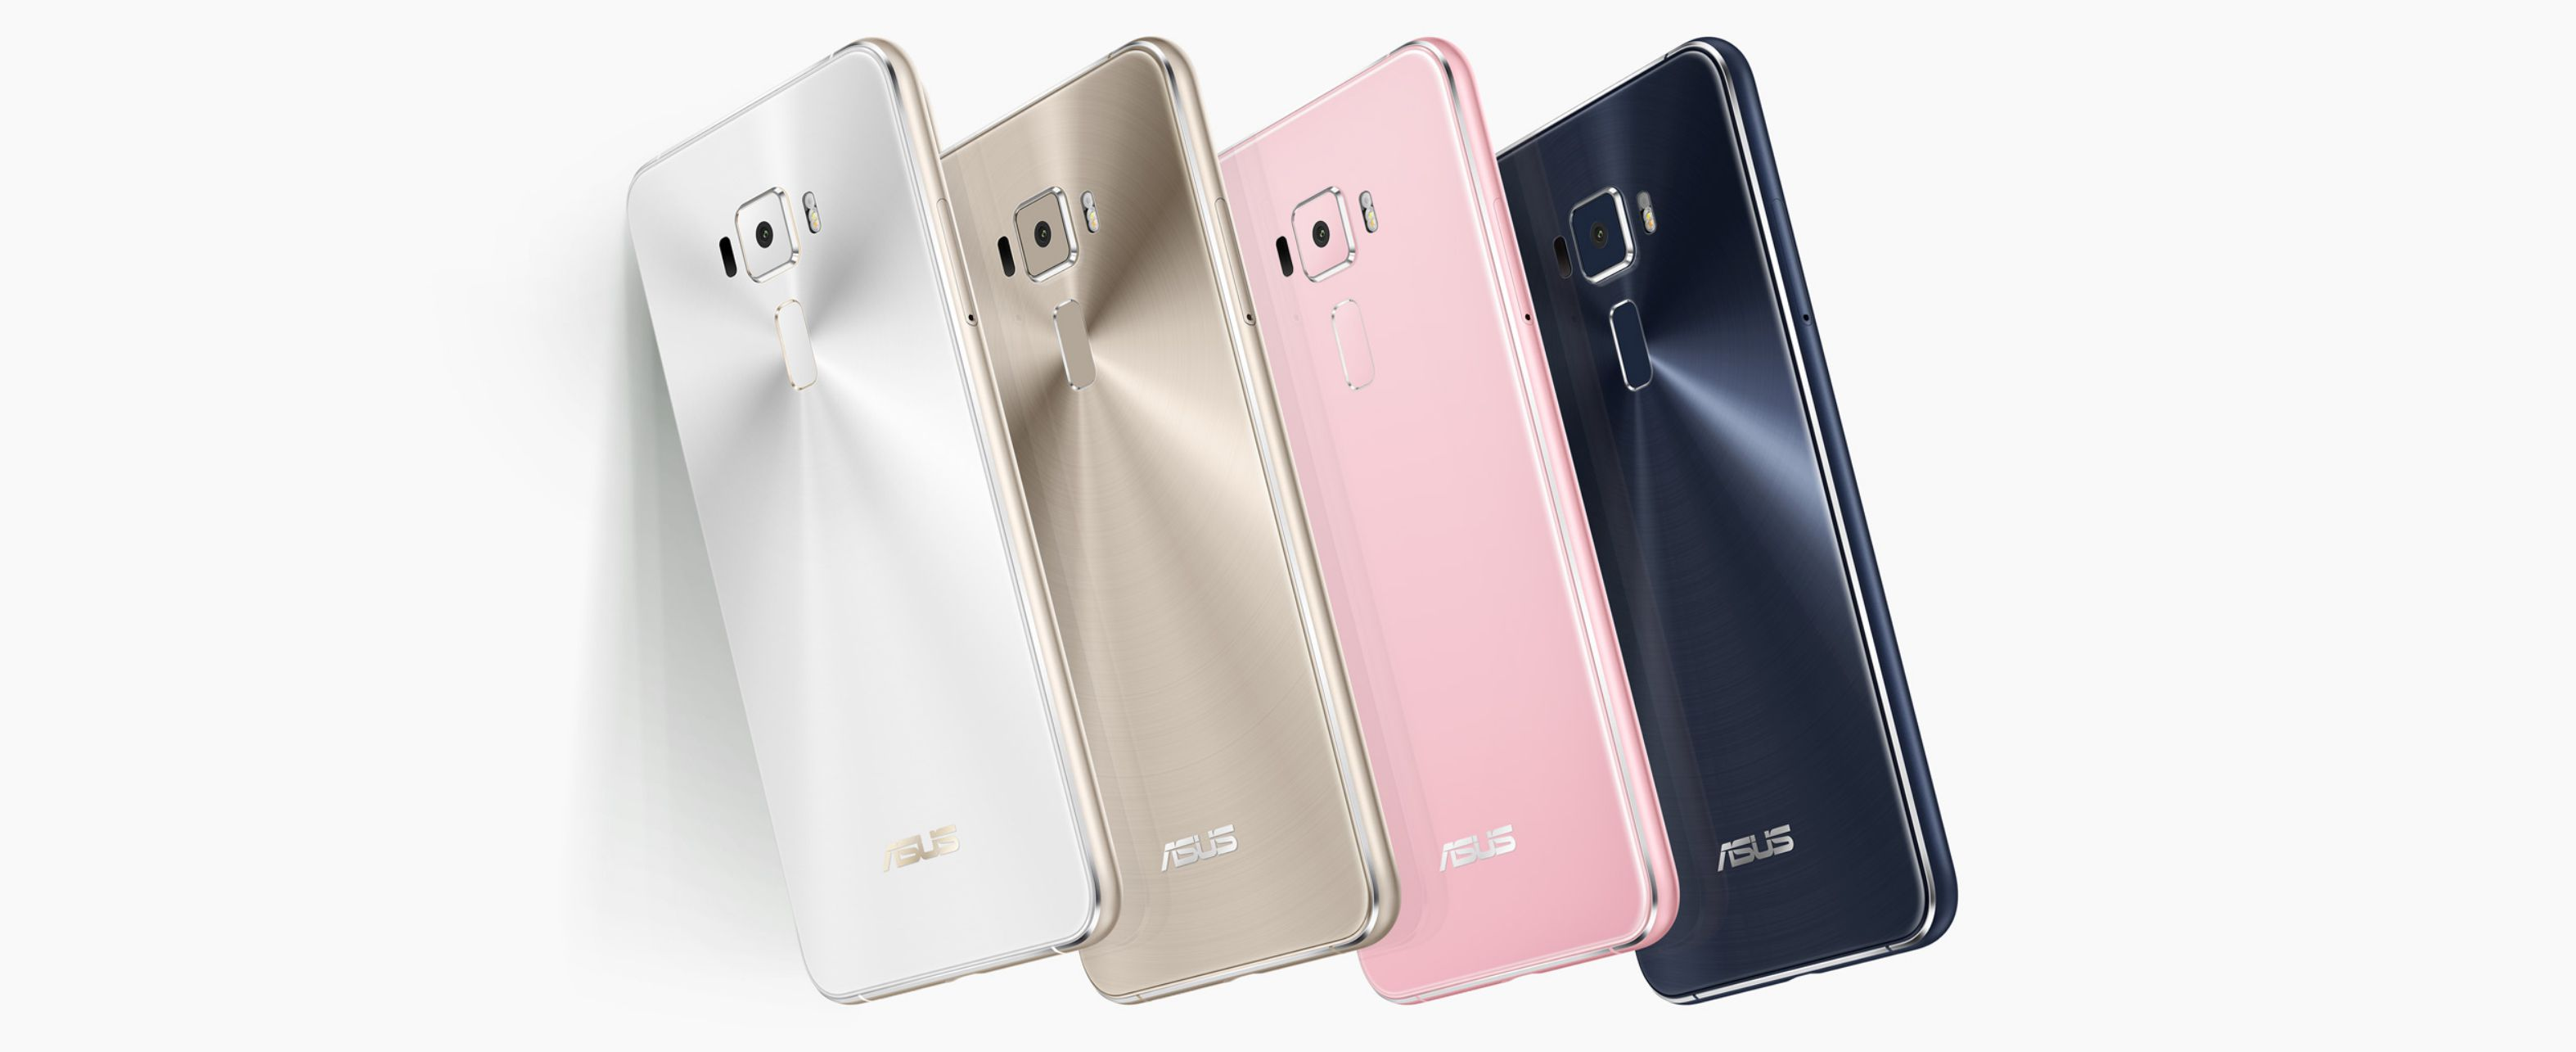 Asus ZenFone 3 in silver, gold, pink and black, back view